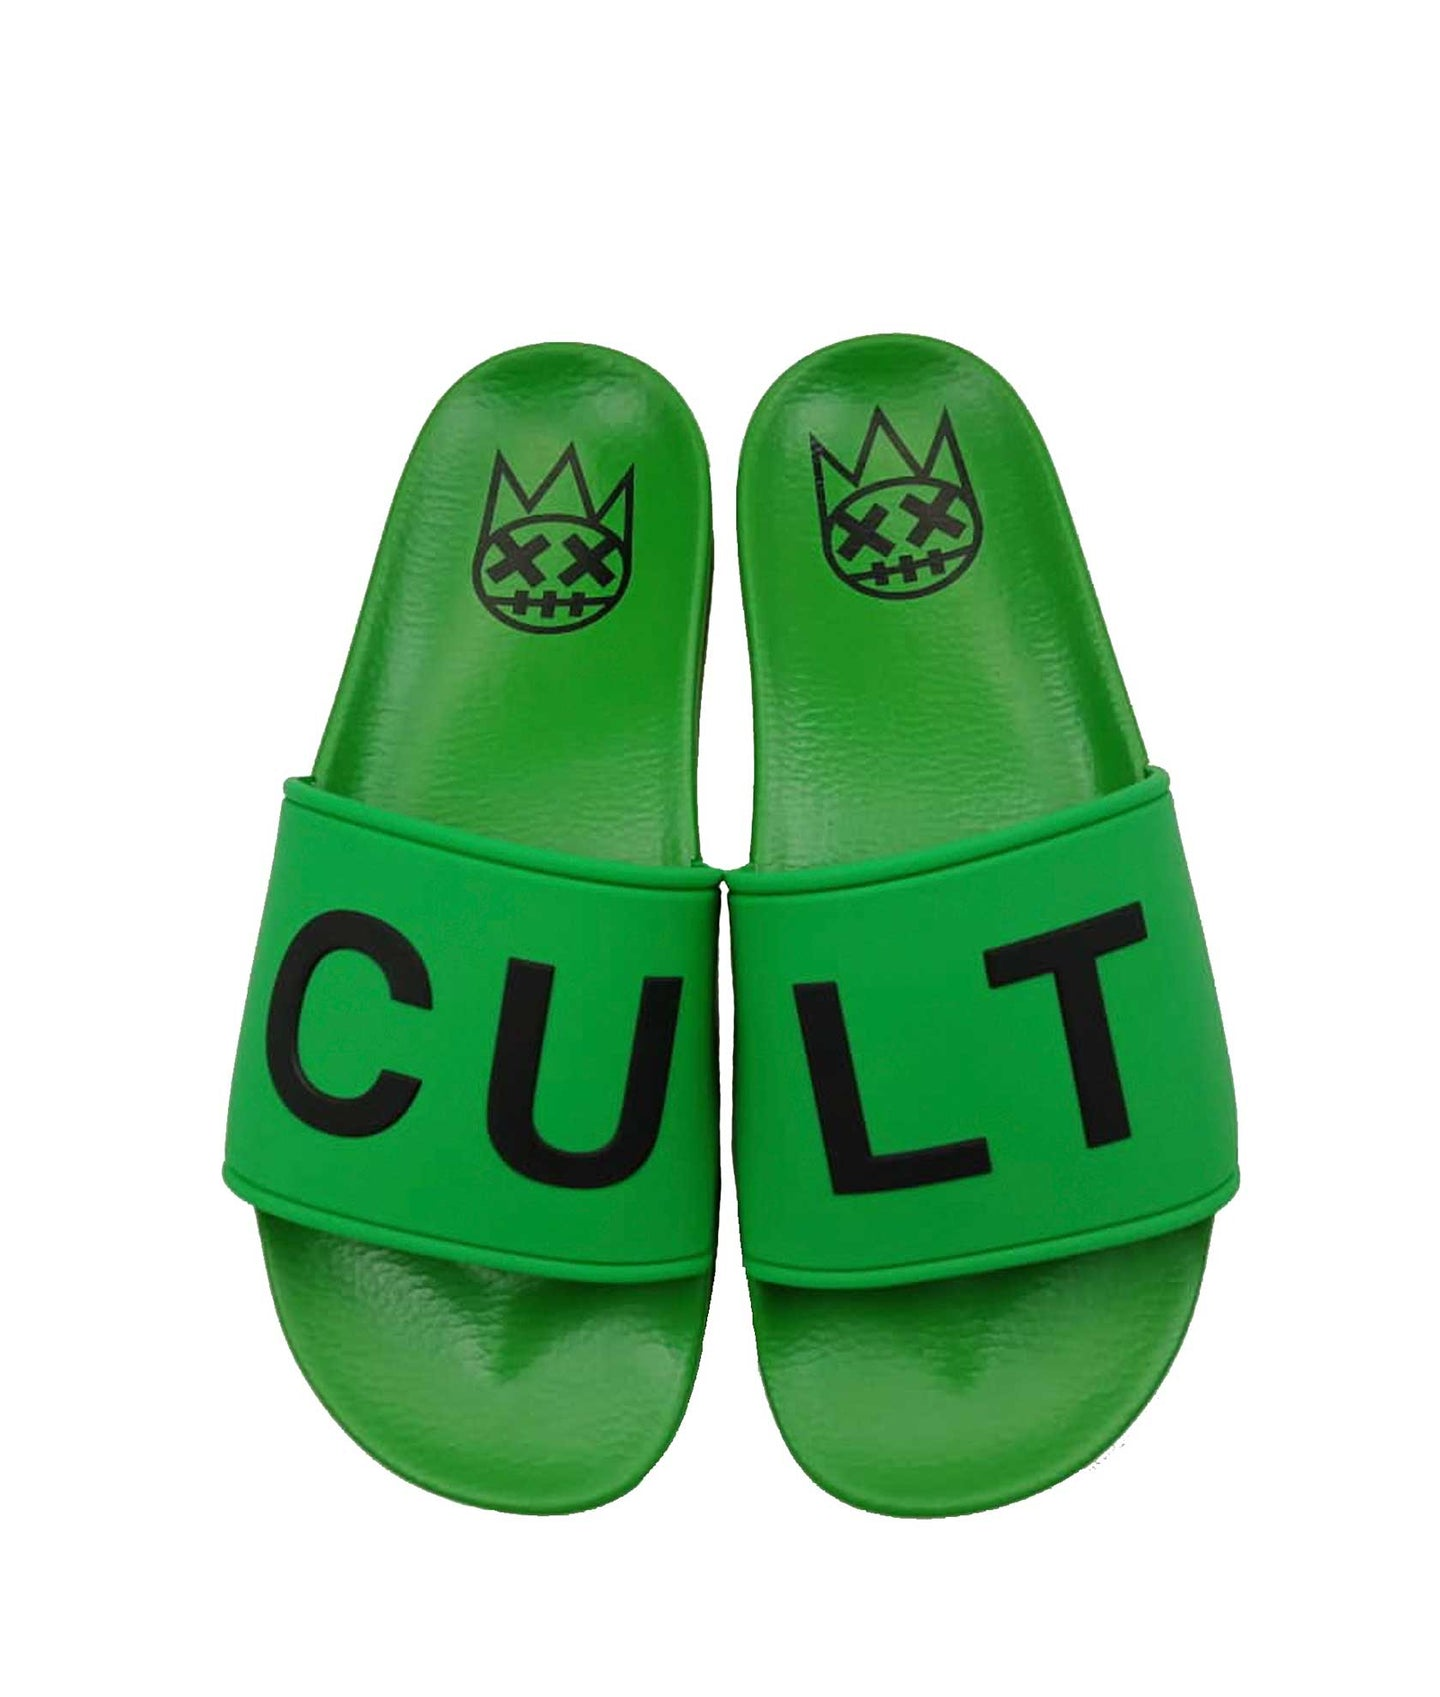 CULT SANDALS IN GREEN /W WHITE SOCKS *PREORDER*